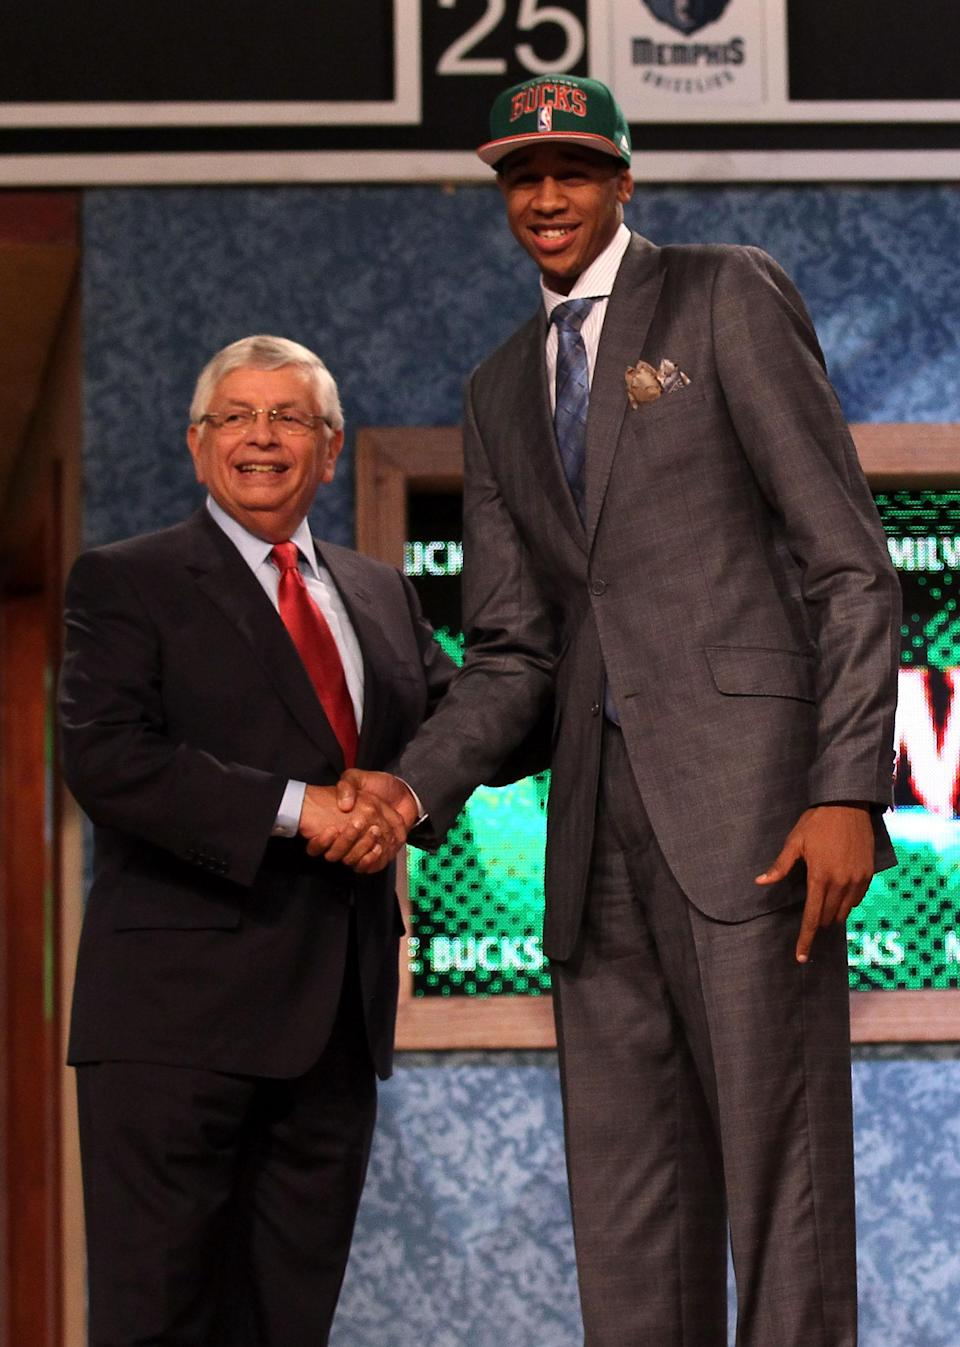 NEWARK, NJ - JUNE 28: John Henson (R) of the North Carolina Tar Heels greets NBA Commissioner David Stern (L) after he was selected number fourteen overall by the Milwaukee Bucks during the first round of the 2012 NBA Draft at Prudential Center on June 28, 2012 in Newark, New Jersey. NOTE TO USER: User expressly acknowledges and agrees that, by downloading and/or using this Photograph, user is consenting to the terms and conditions of the Getty Images License Agreement. (Photo by Elsa/Getty Images)